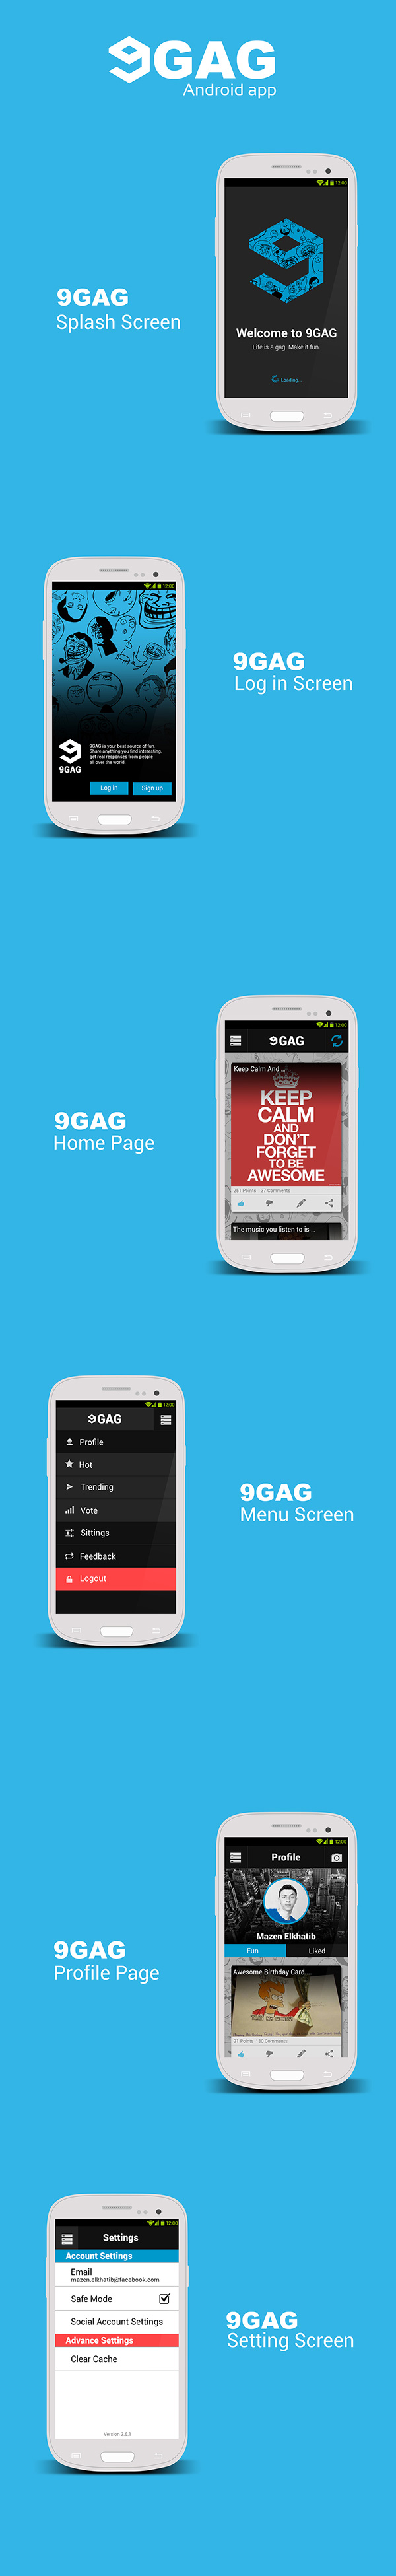 9gag mobile app ui re design on student show for Architecture students 9gag